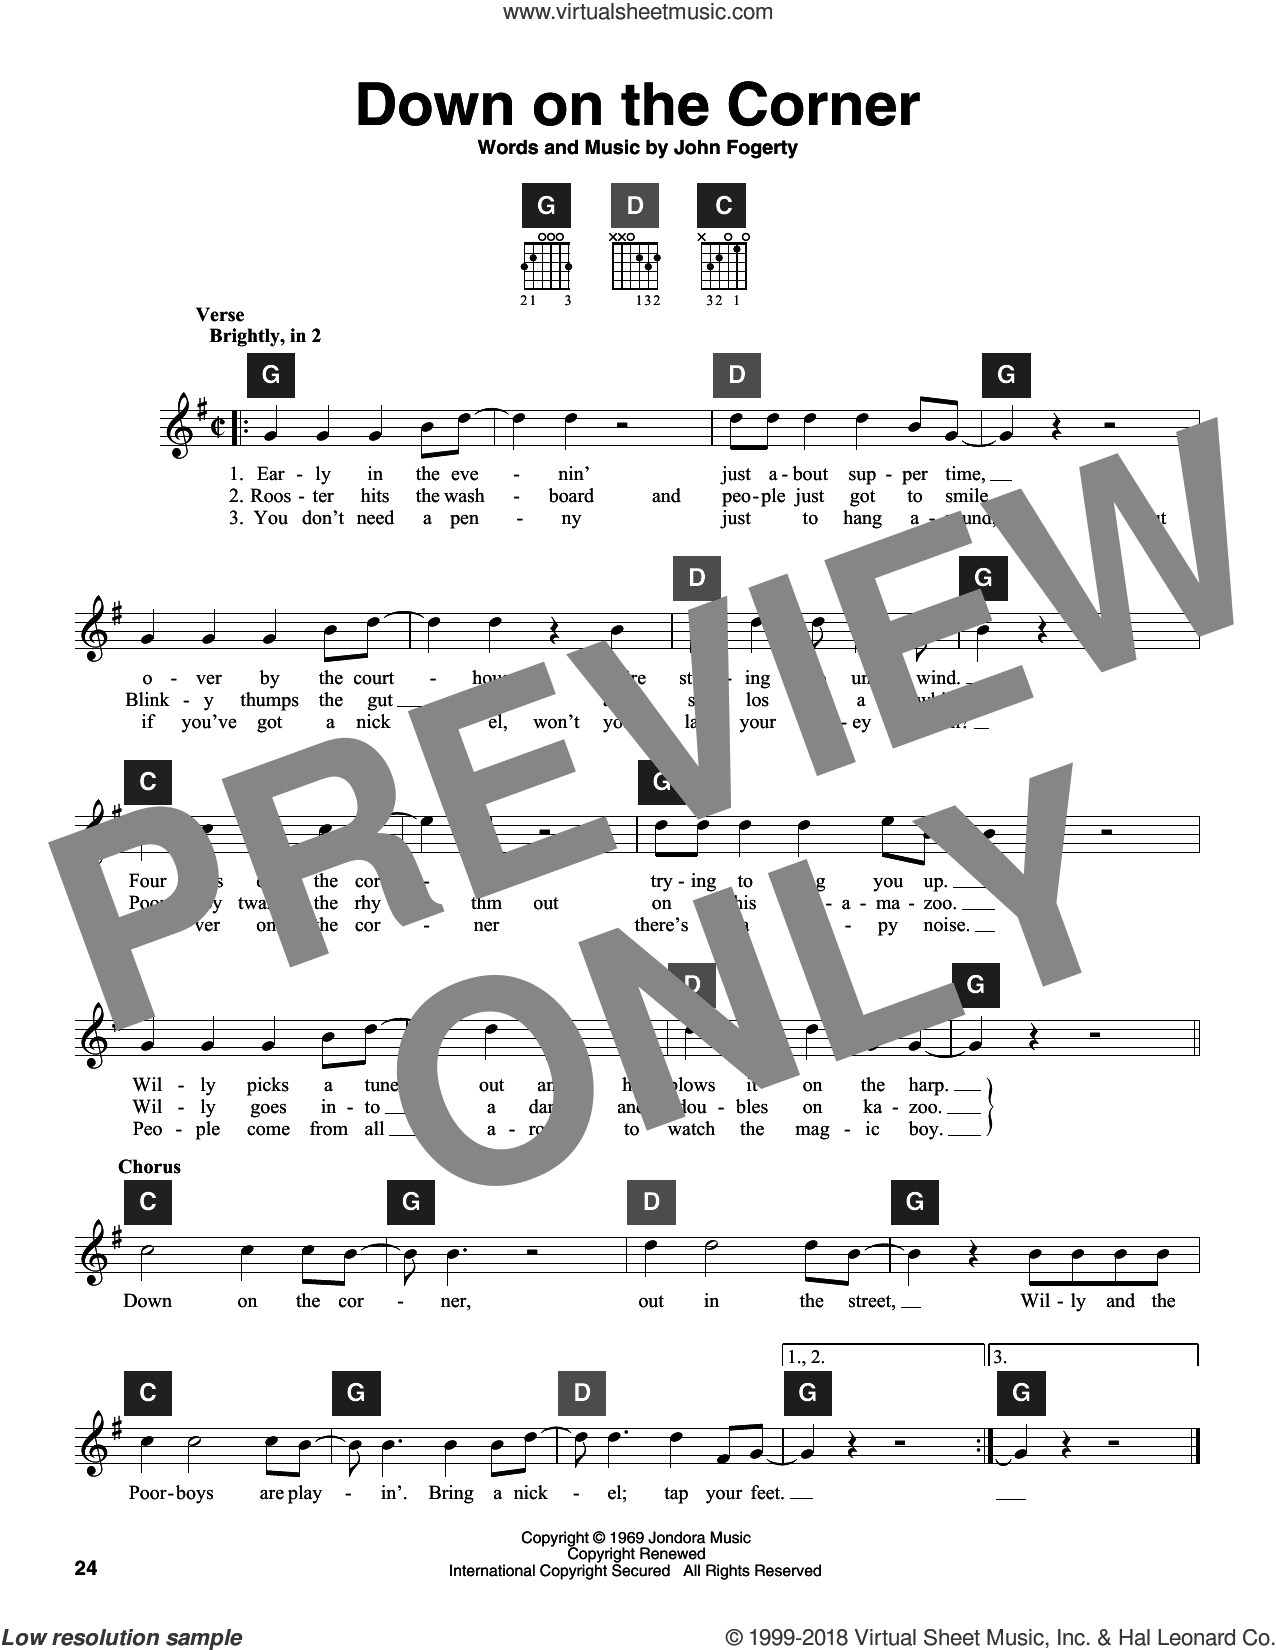 Down On The Corner sheet music for guitar solo (ChordBuddy system) by John Fogerty